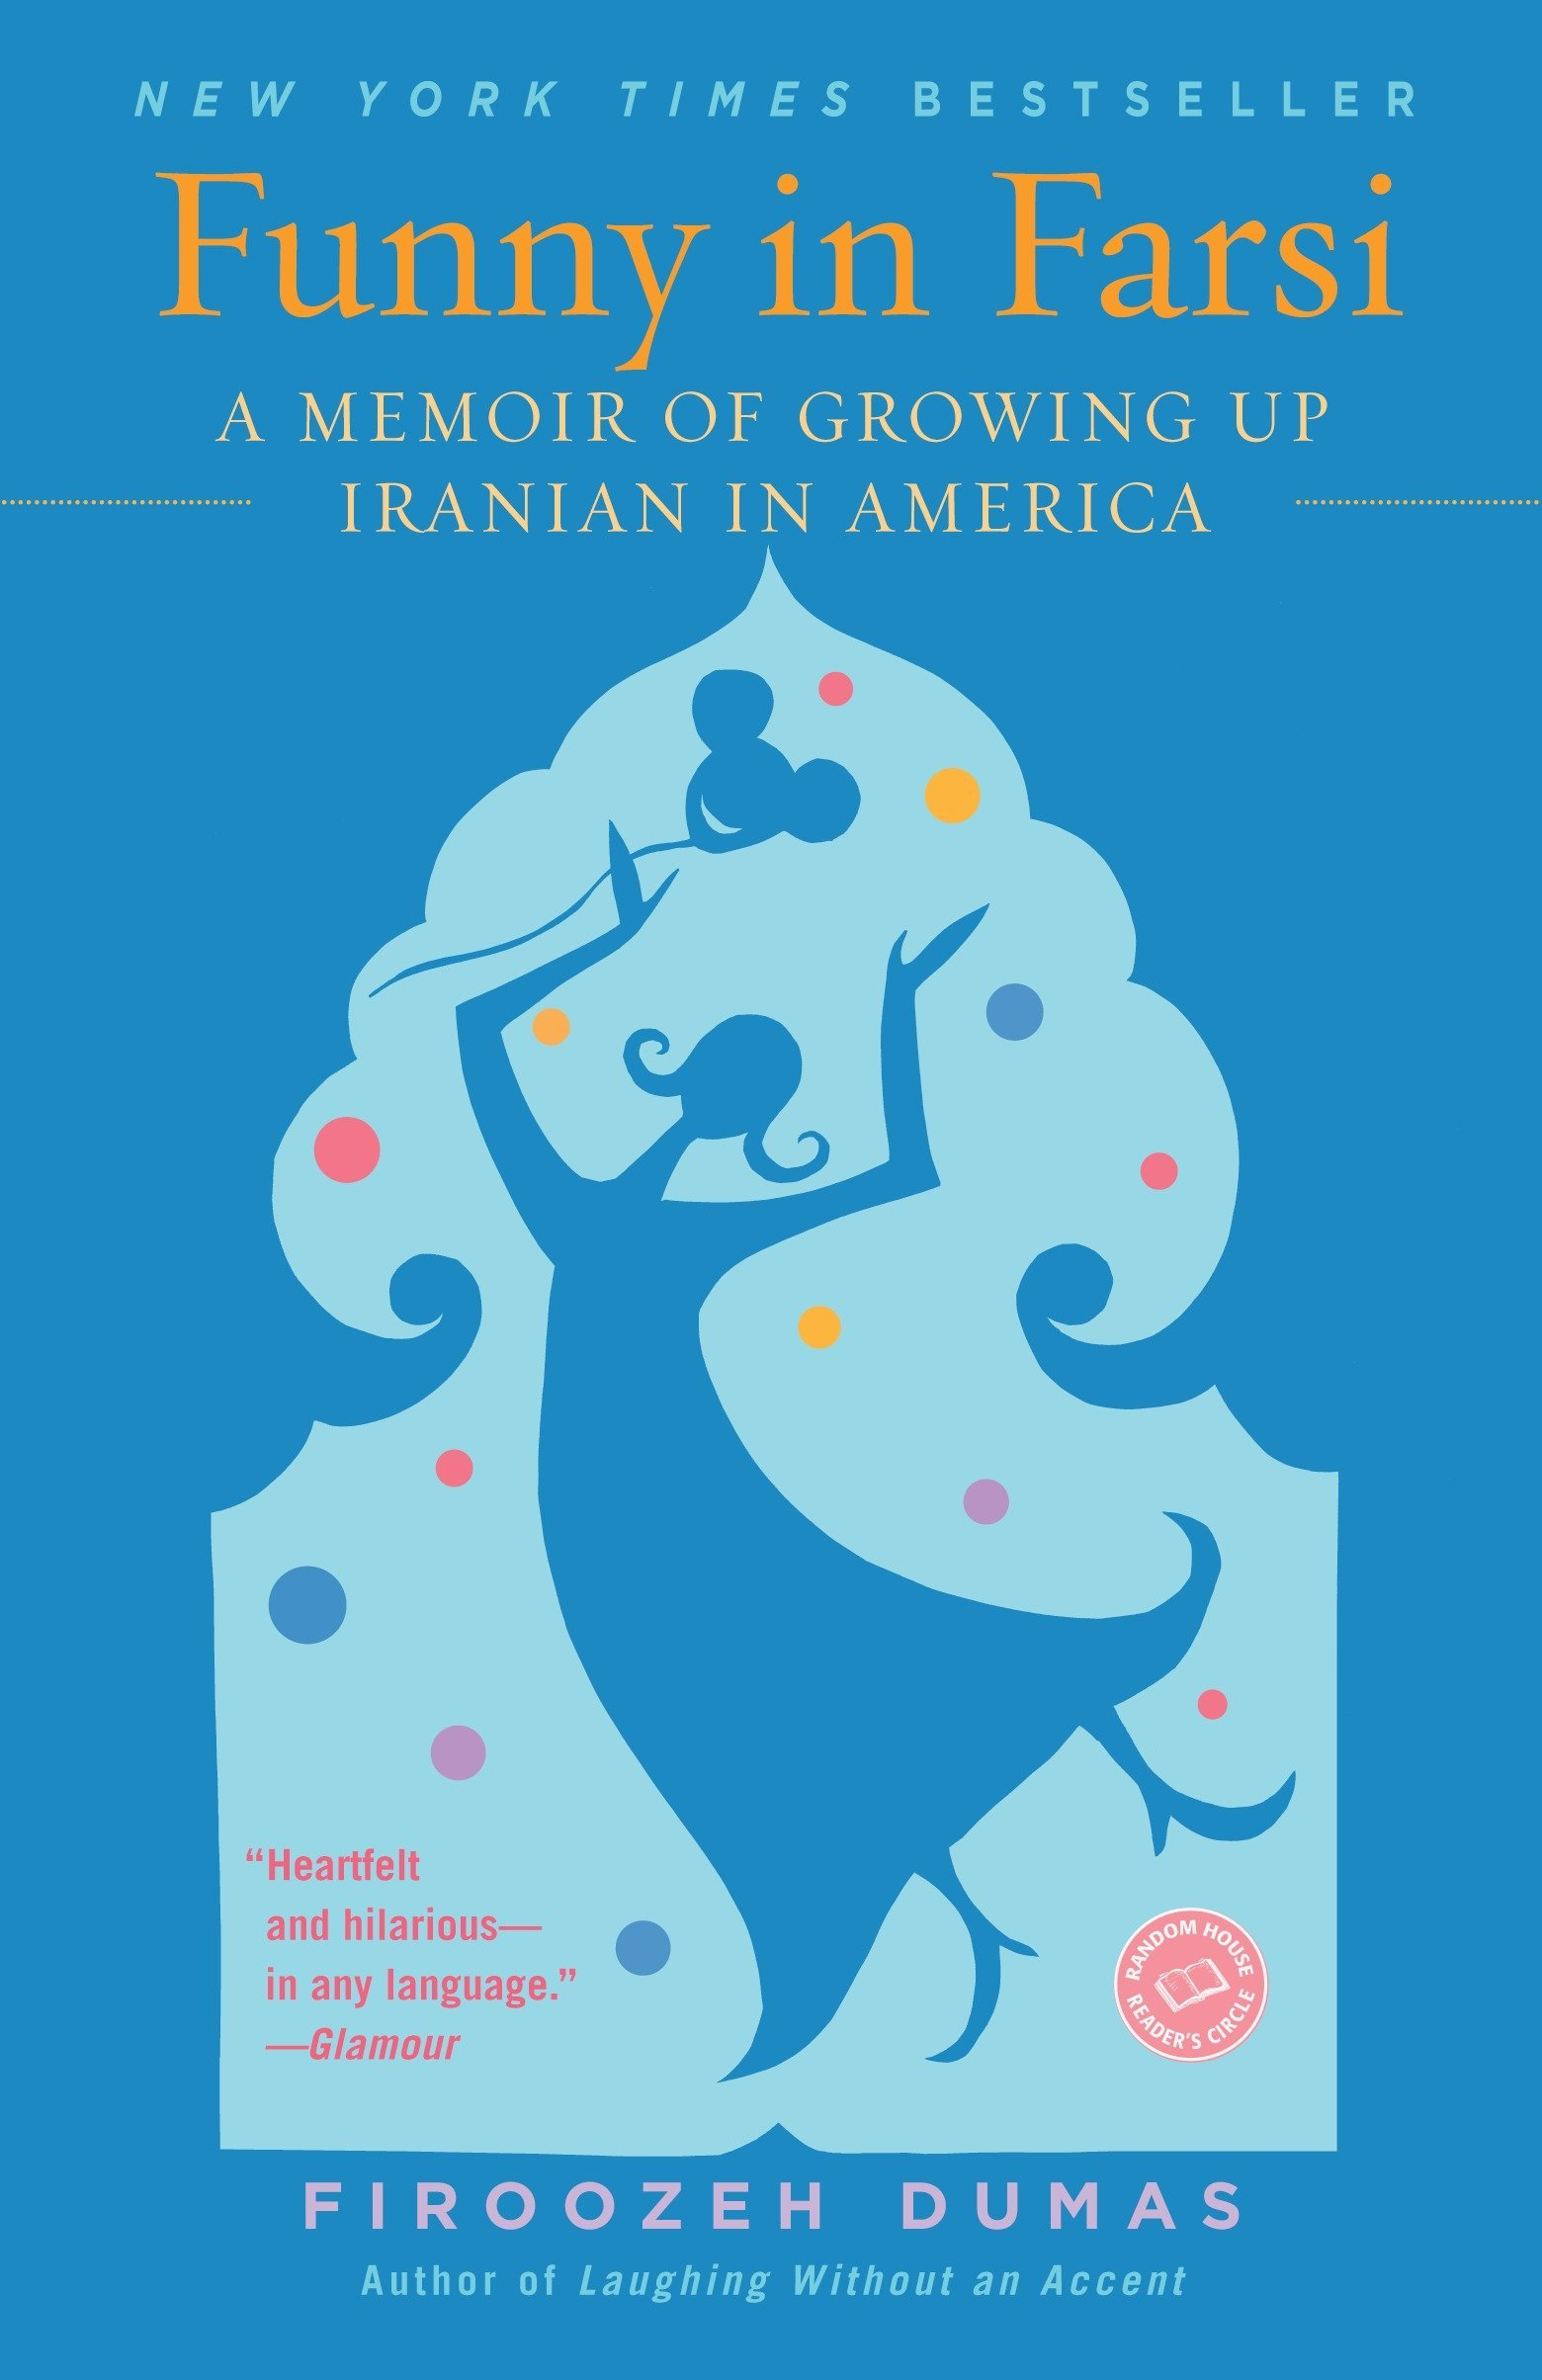 Funny in Farsi: A Memoir of Growing Up Iranian in America by Dumas, Firoozeh